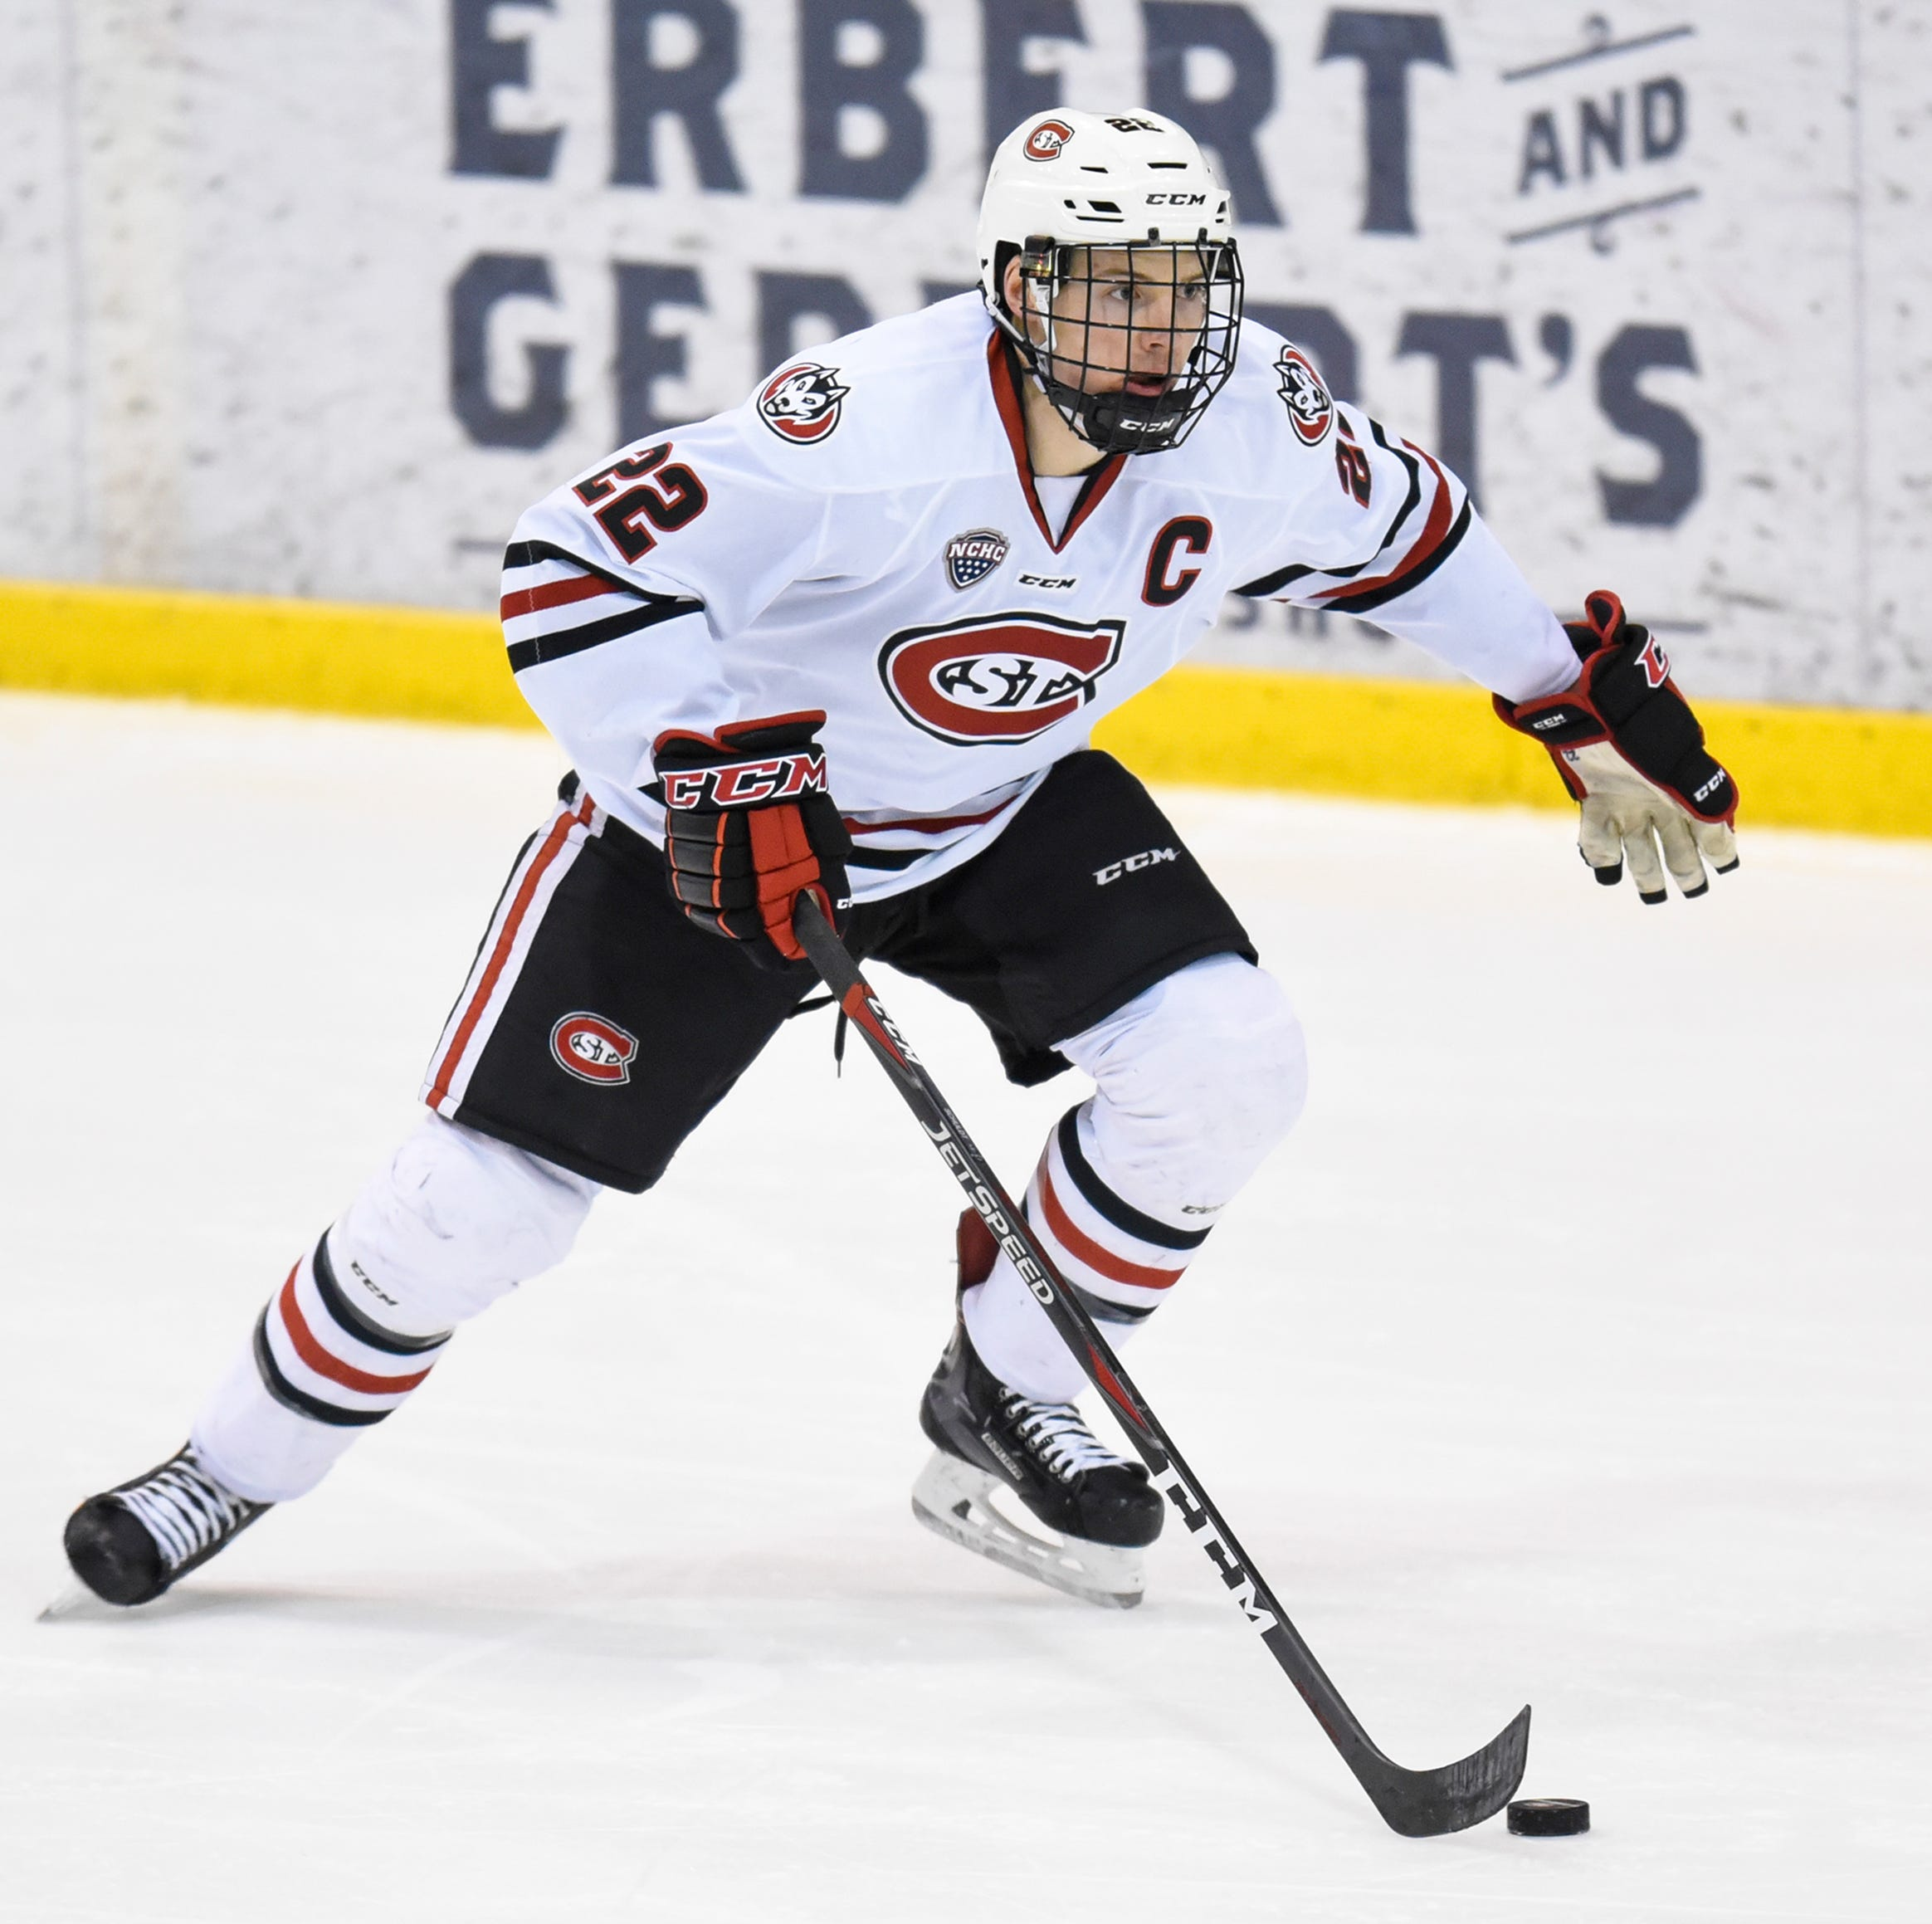 St. Cloud State's Jimmy Schuldt advances with the puck during the first period of the Friday, Feb. 8, game at the Herb Brooks National Hockey Center in St. Cloud.